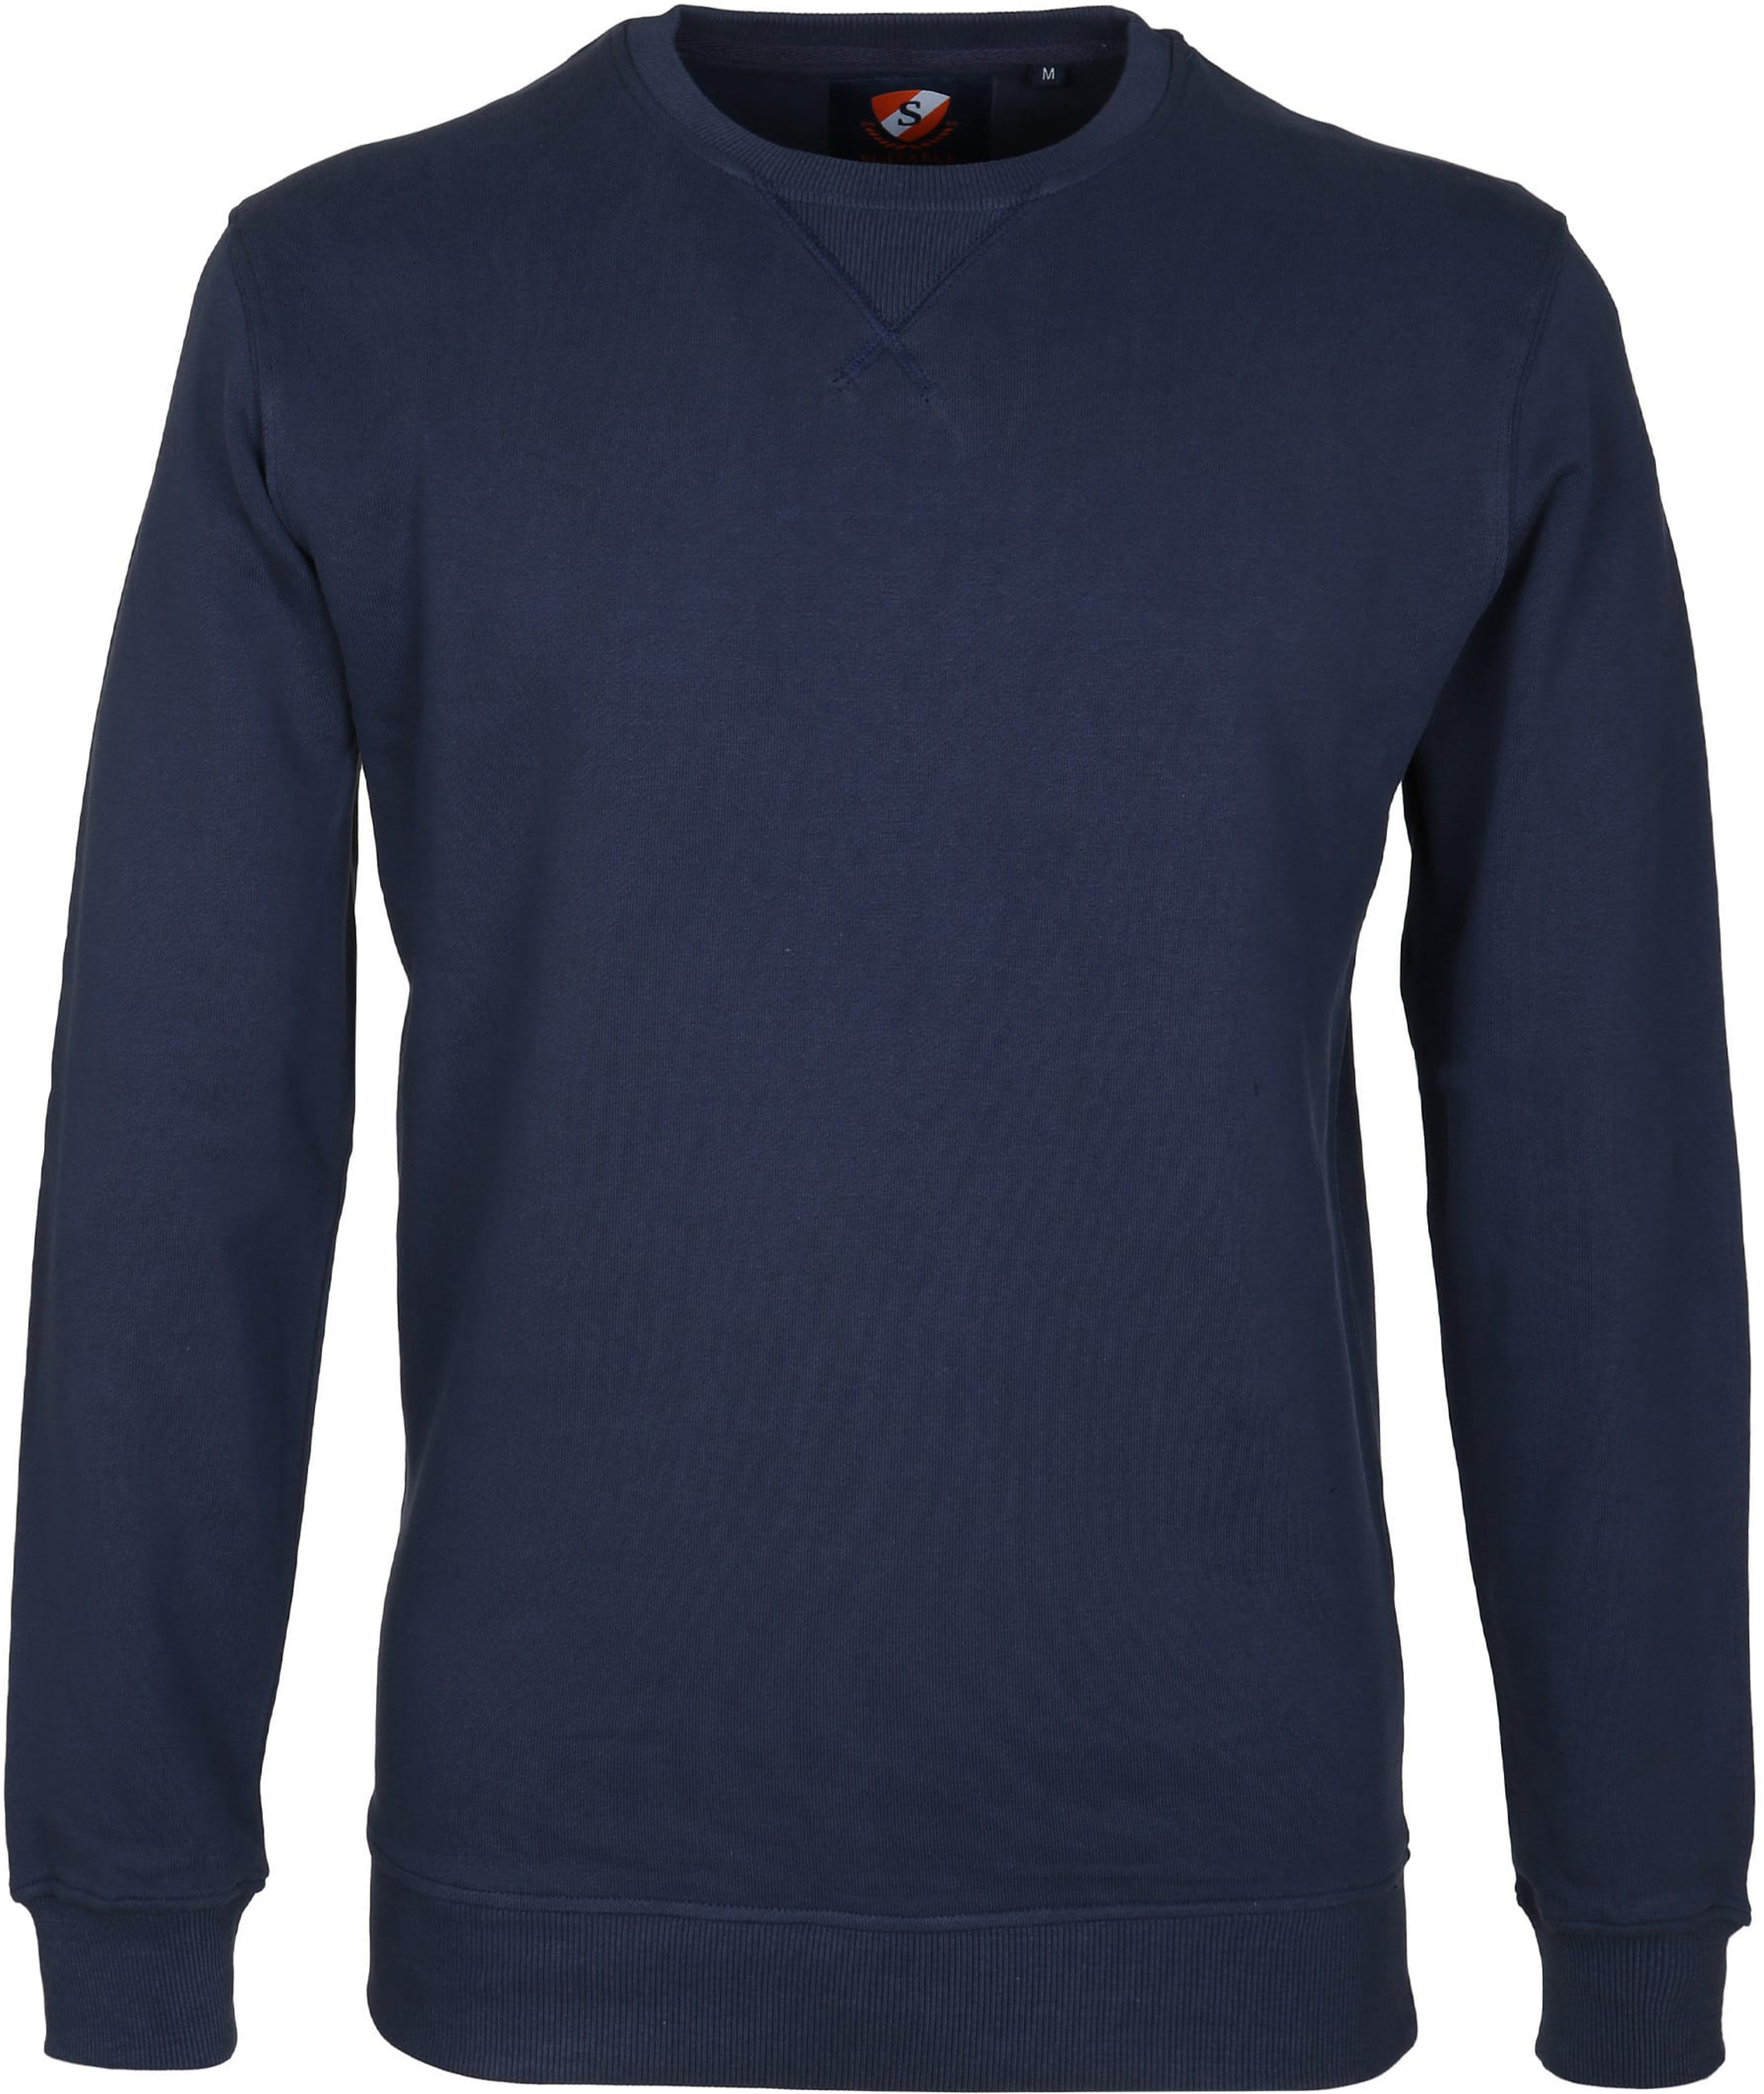 Suitable Sweater Uni Navy foto 0